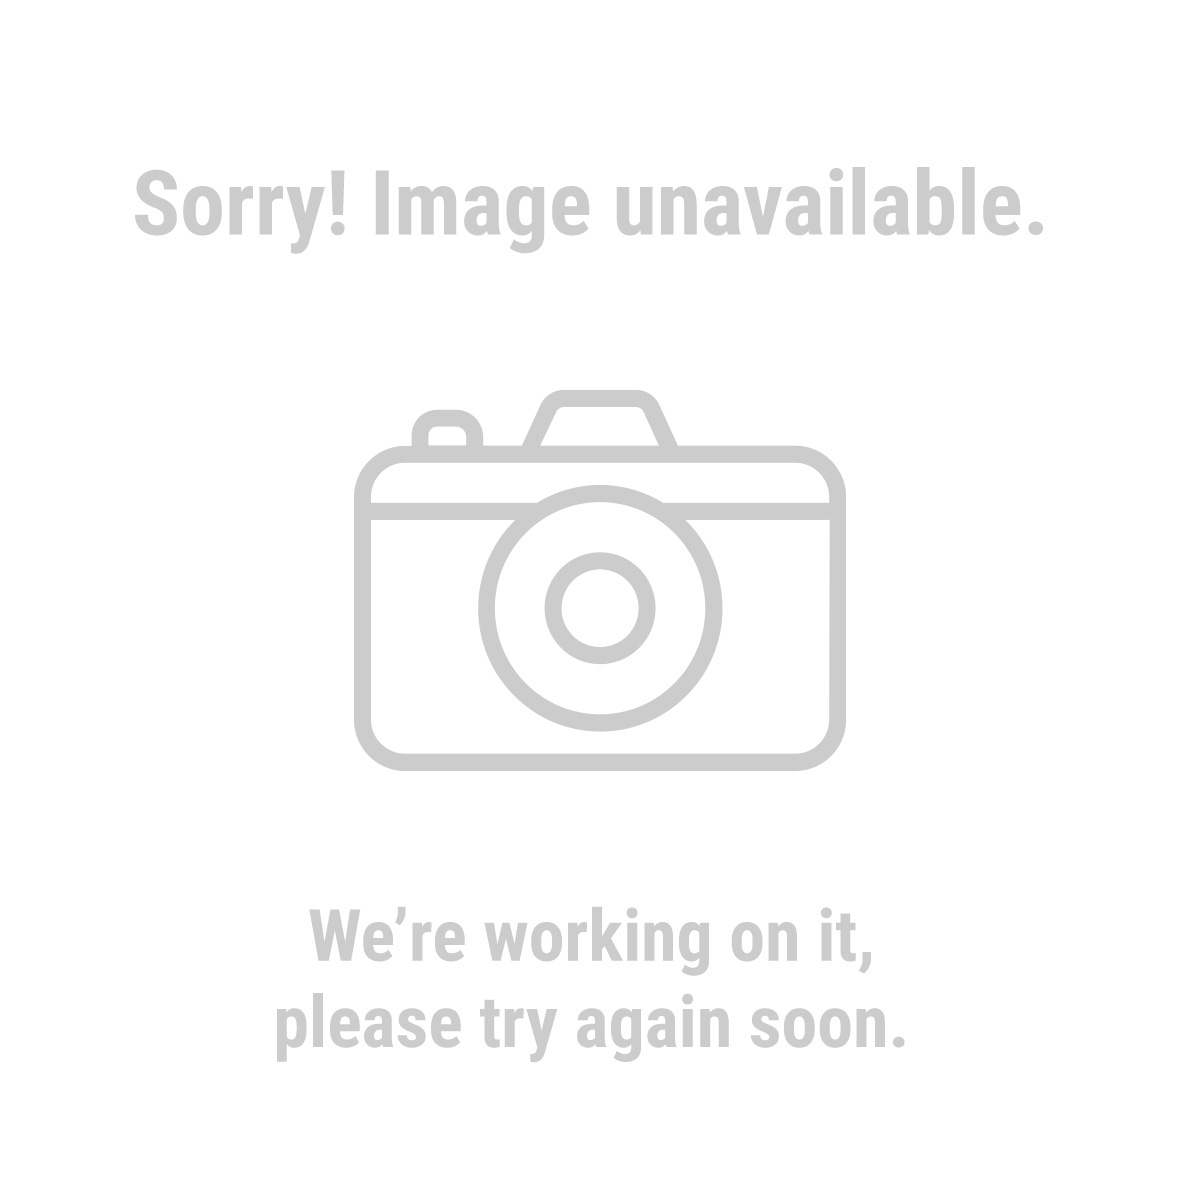 Predator Engines 61415 8 HP (301cc) OHV Horizontal Shaft Gas Engine